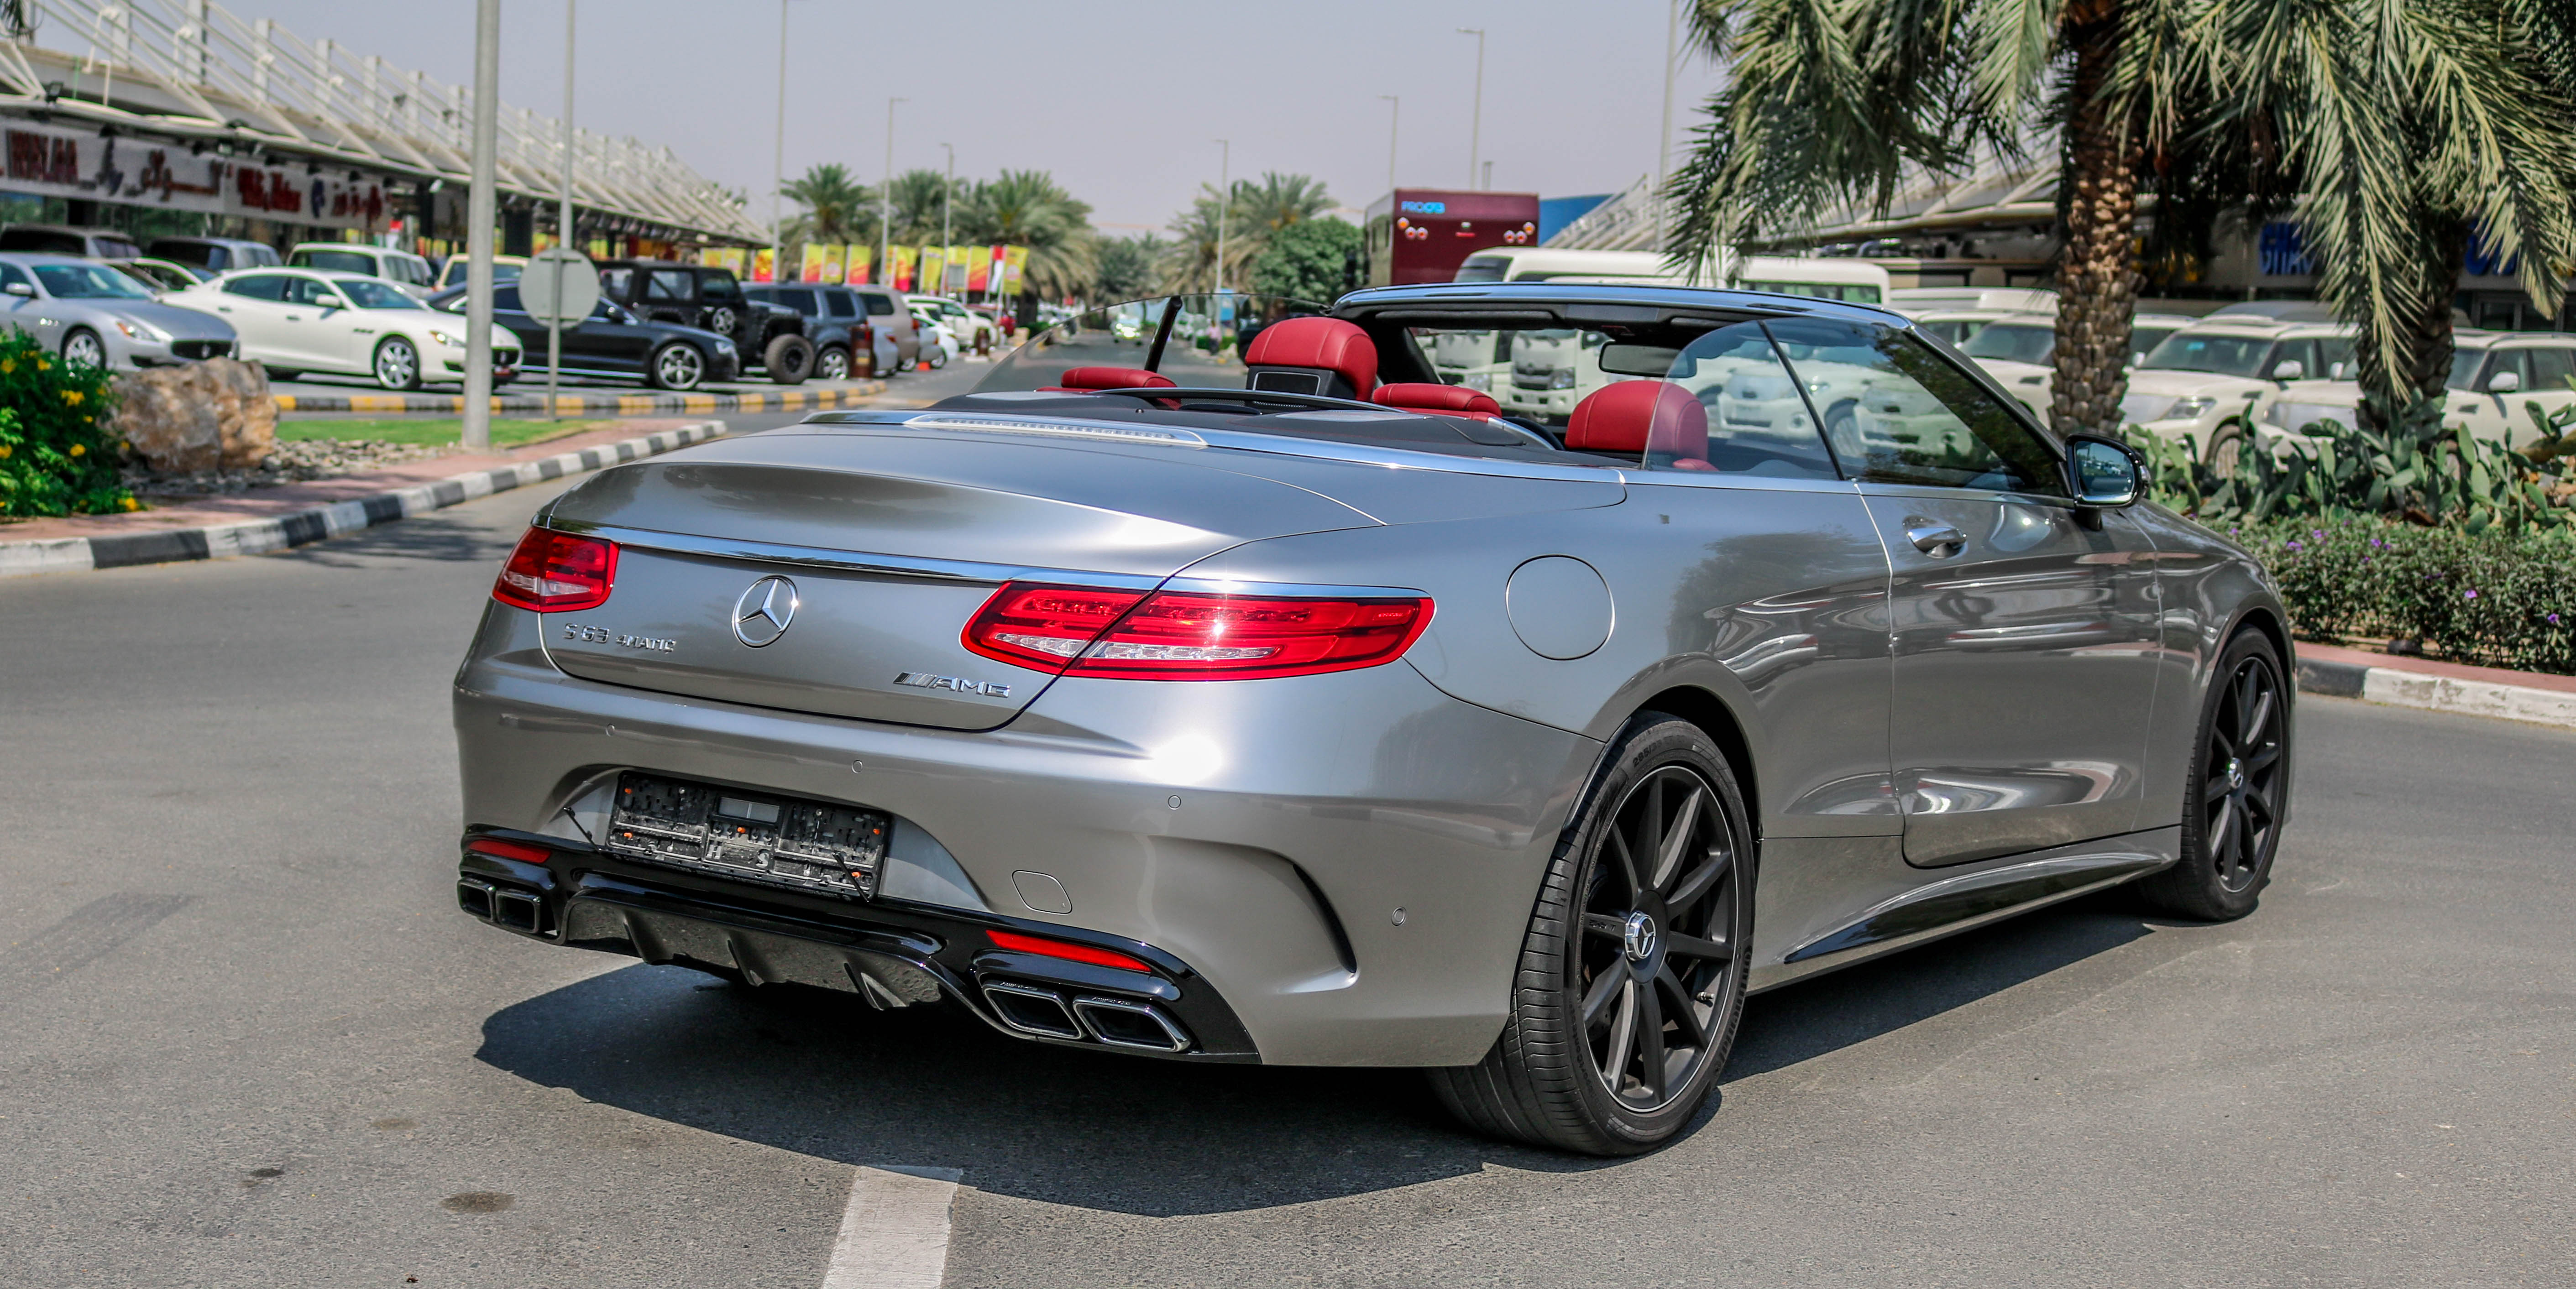 Mercedes benz s63 convertible edition 1 of 130 2016 gcc for Best time of year to buy a mercedes benz